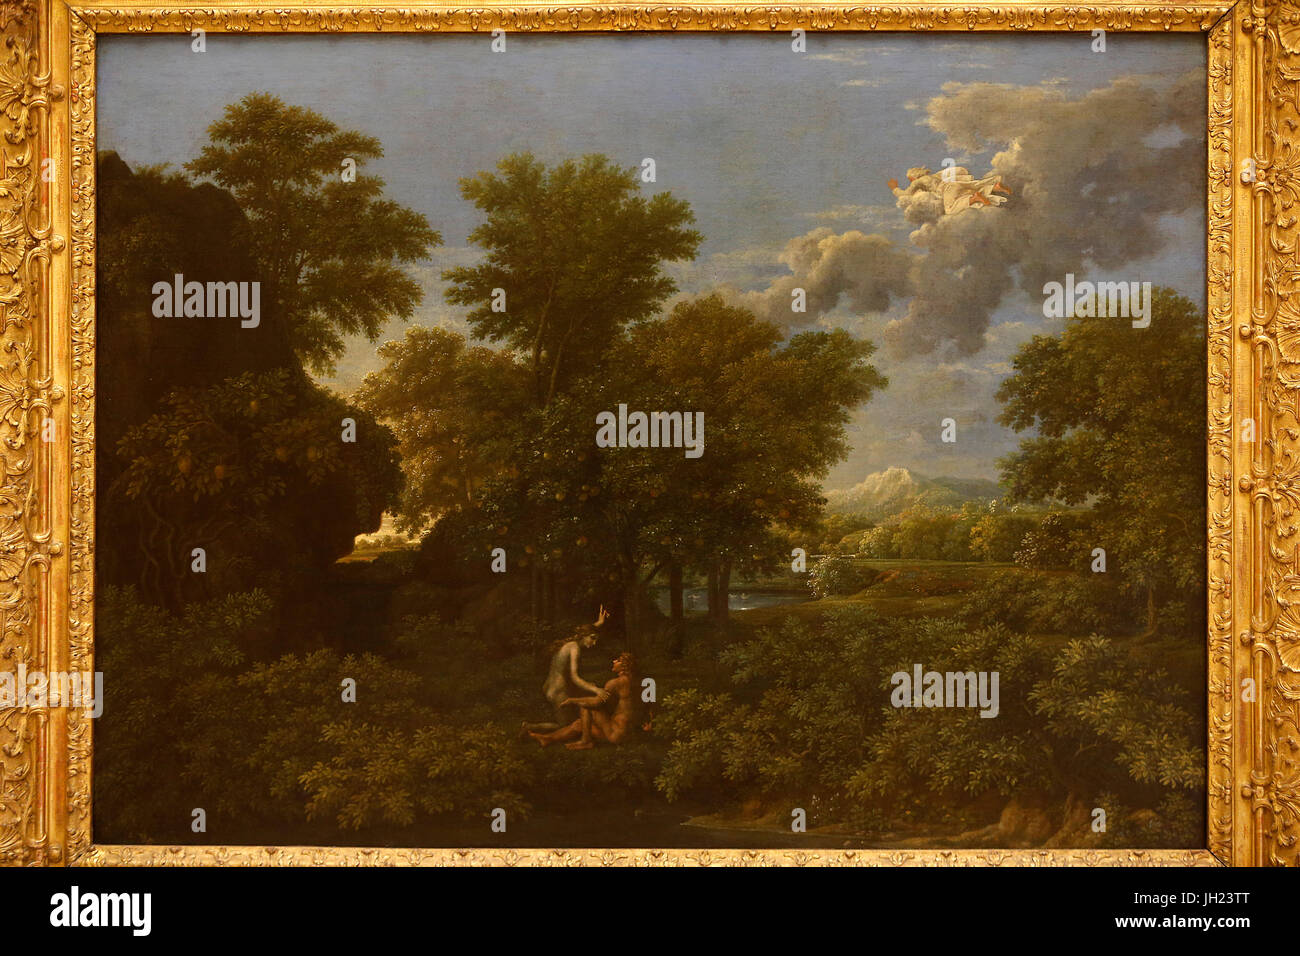 Louvre museum. Spring or Heaven on earth. Nicolas Poussin. 1660-1664. France. France. - Stock Image